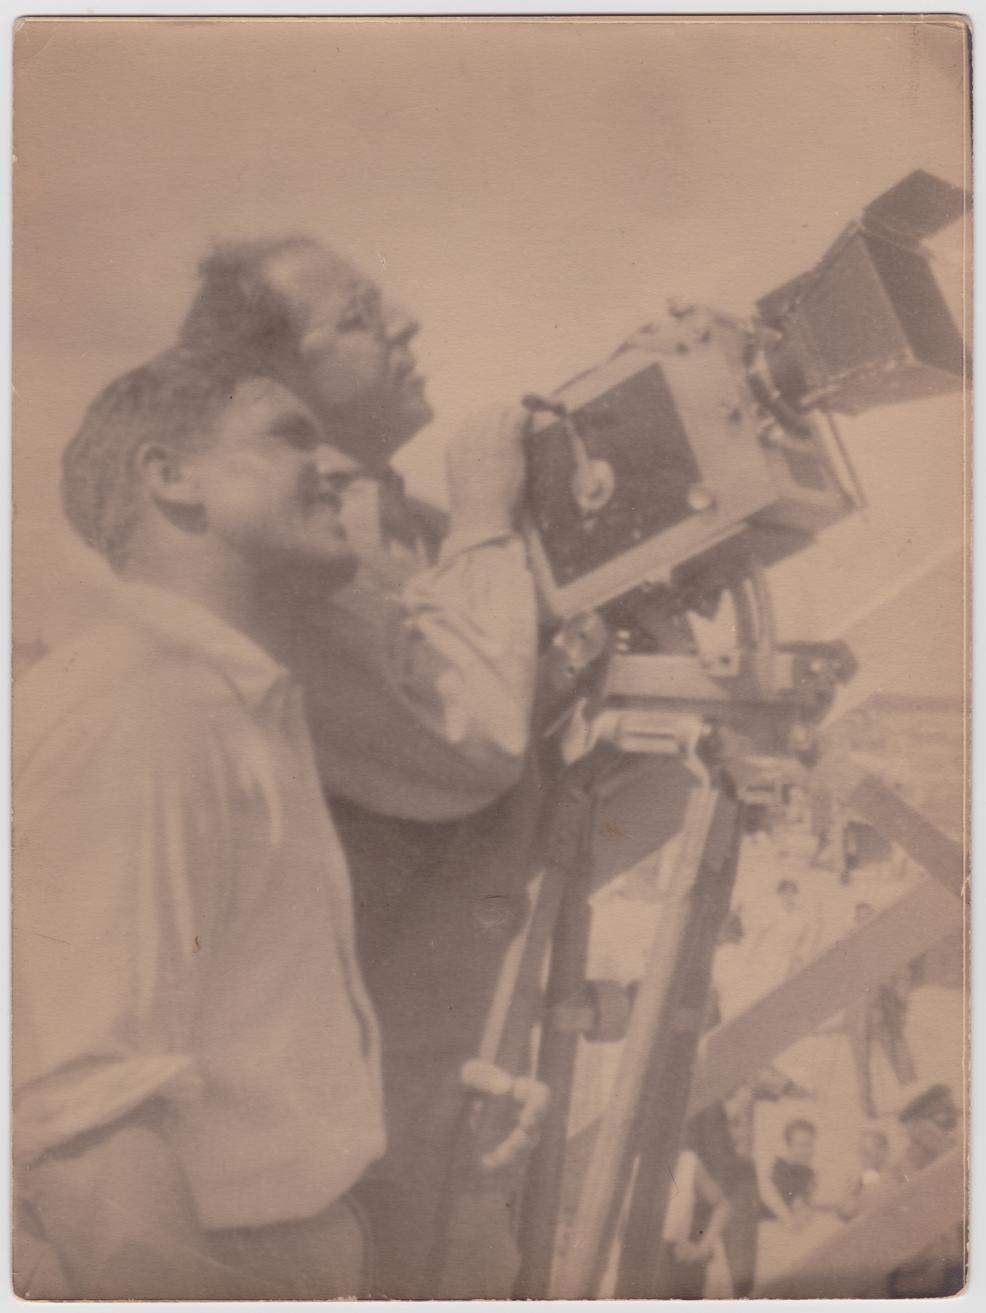 1929 G.W. Pabst and Sepp Allgeier on location